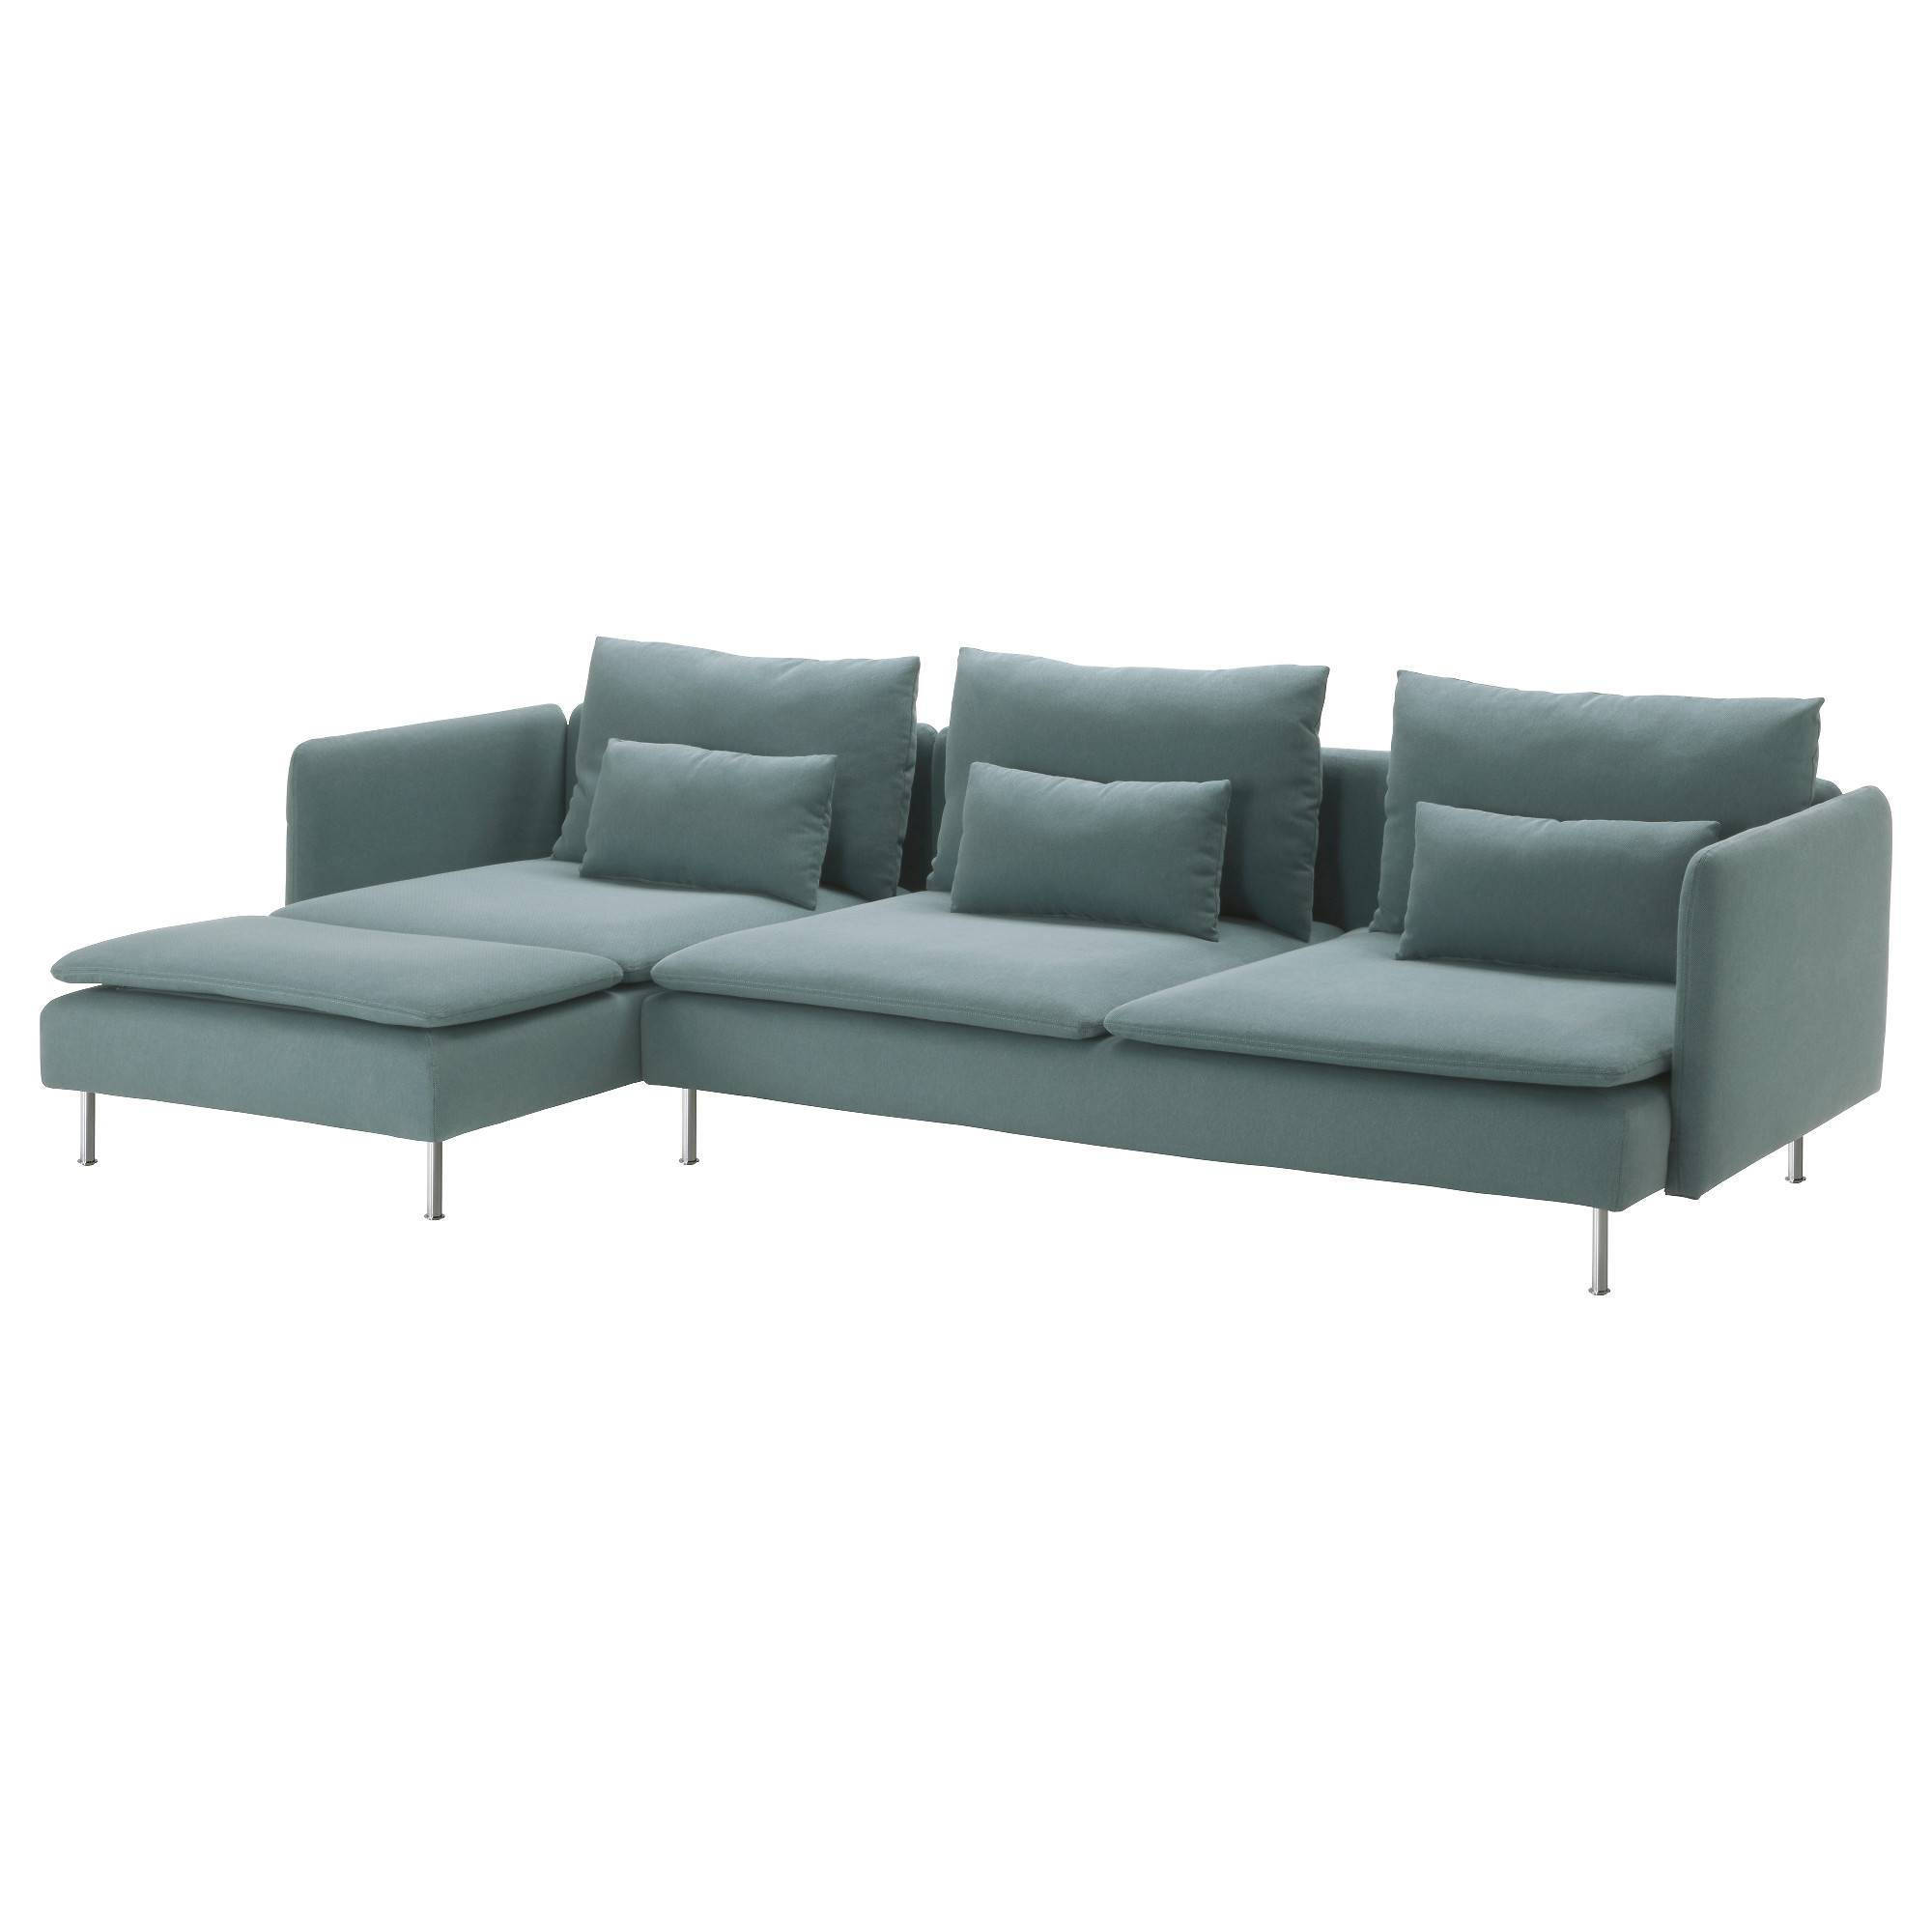 Sectional Sofas & Couches - Ikea for Ikea Sectional Sofa Sleeper (Image 16 of 25)